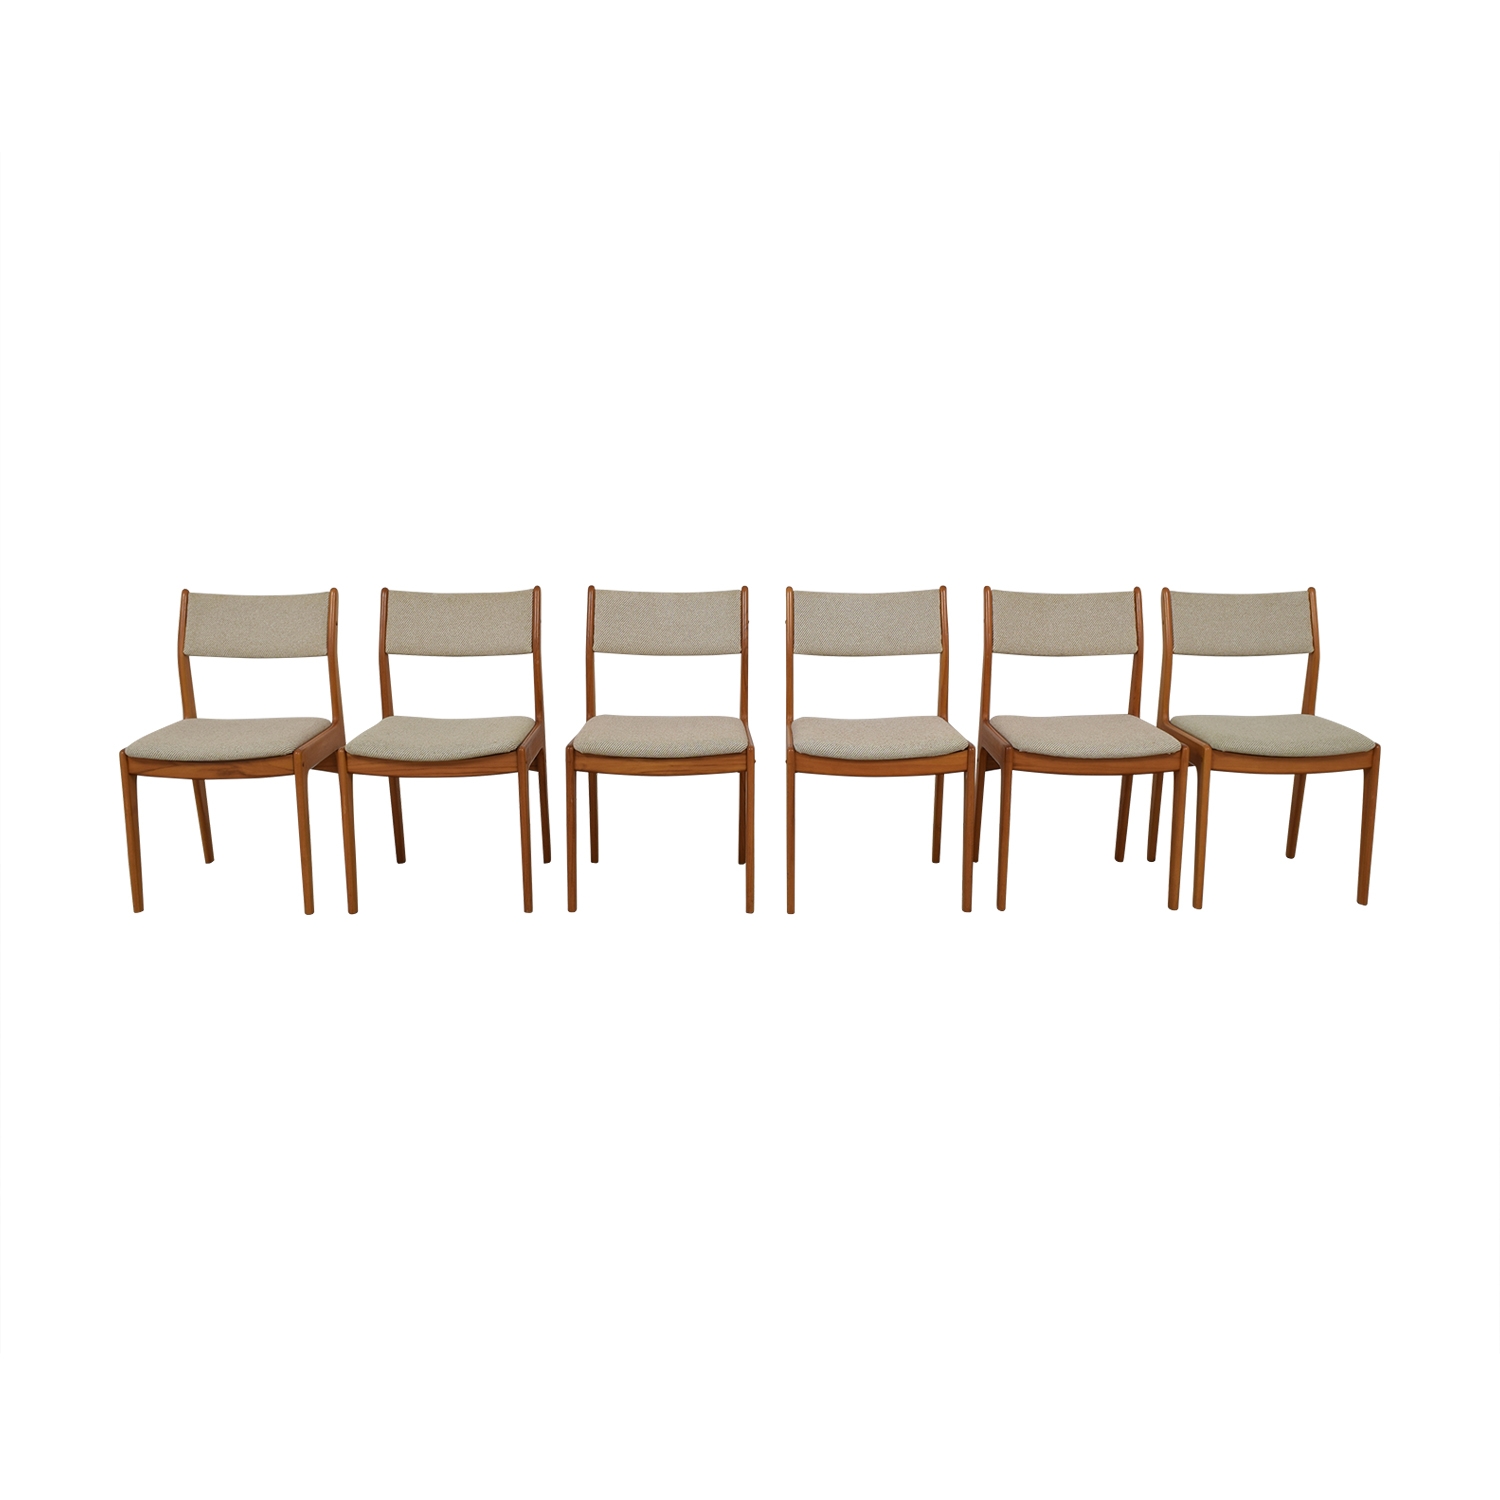 Wood and Beige Upholstered Dining Chairs / Dining Chairs